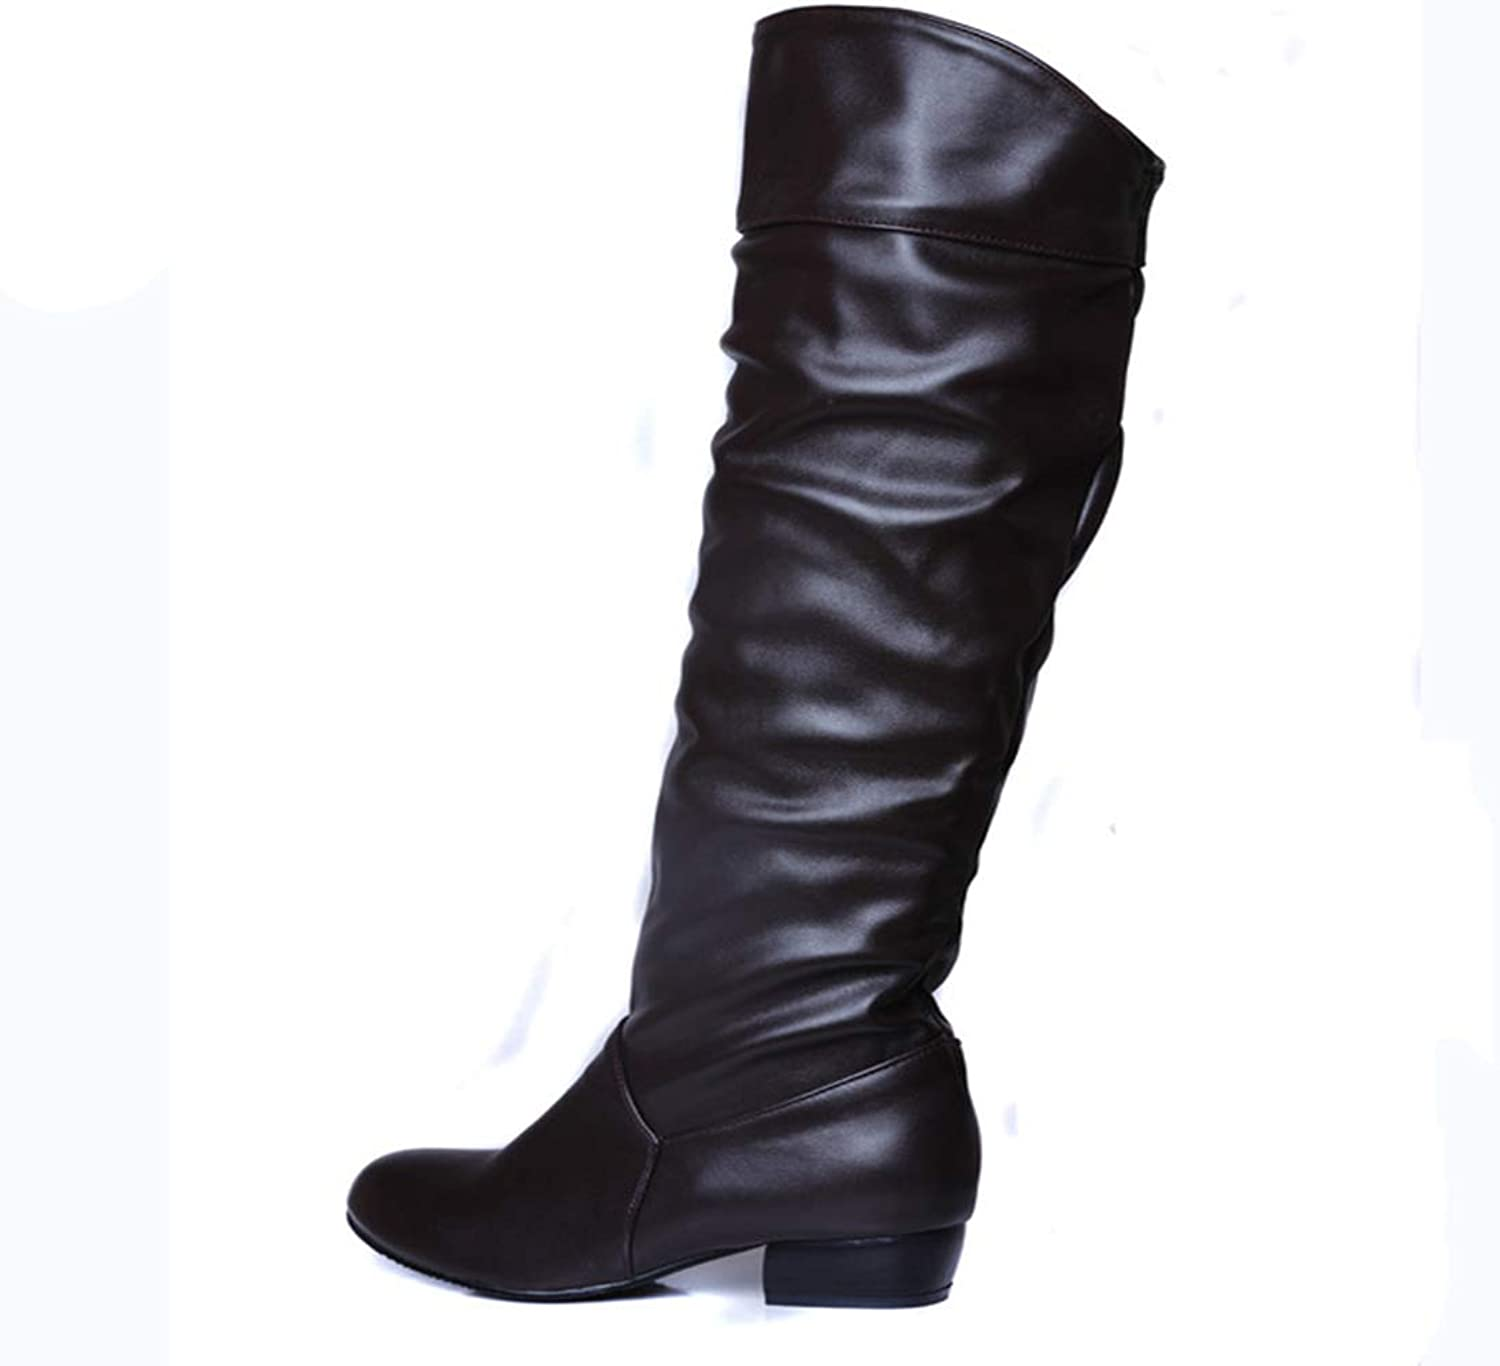 Hoxekle Knee High Women Winter Long Boots Black White Pleated Decoration Leather Slip On Female Boots